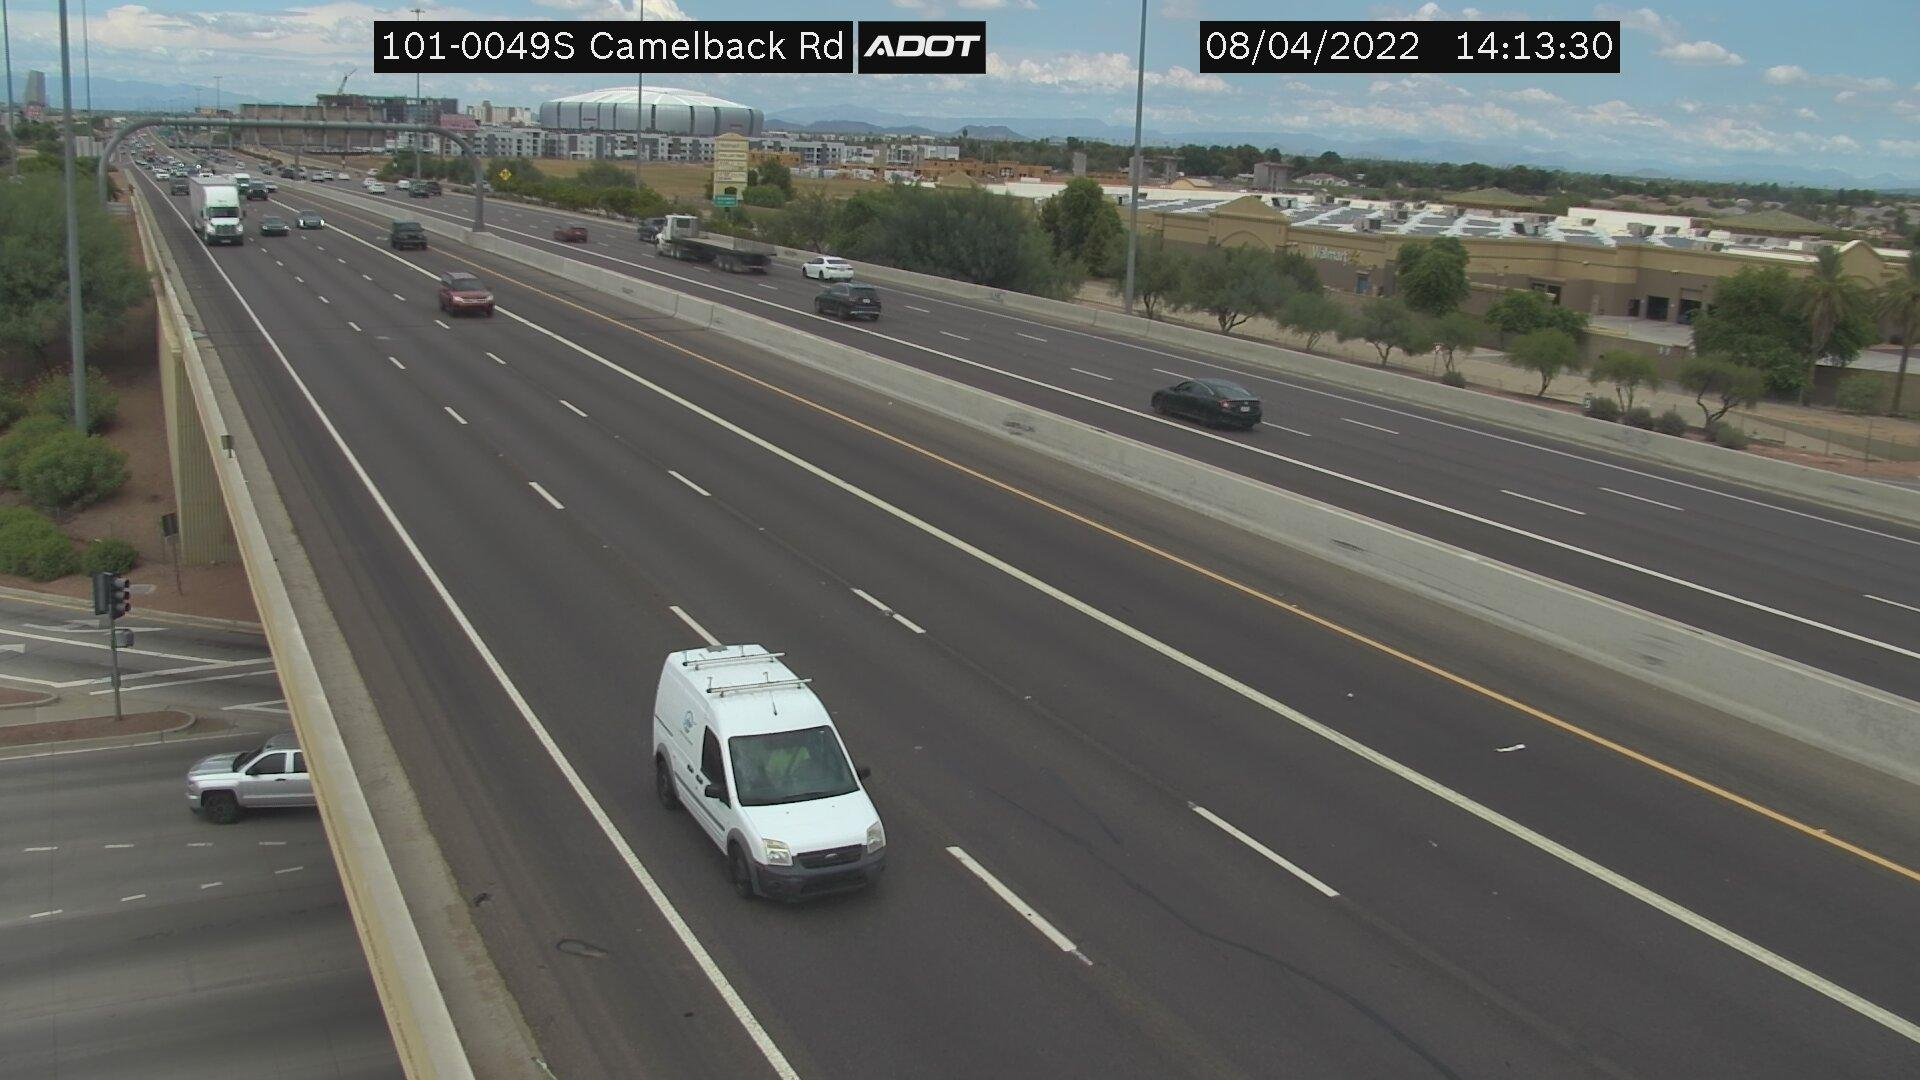 Webcam Liberty Village: Loop 101 South at Camelback Rd